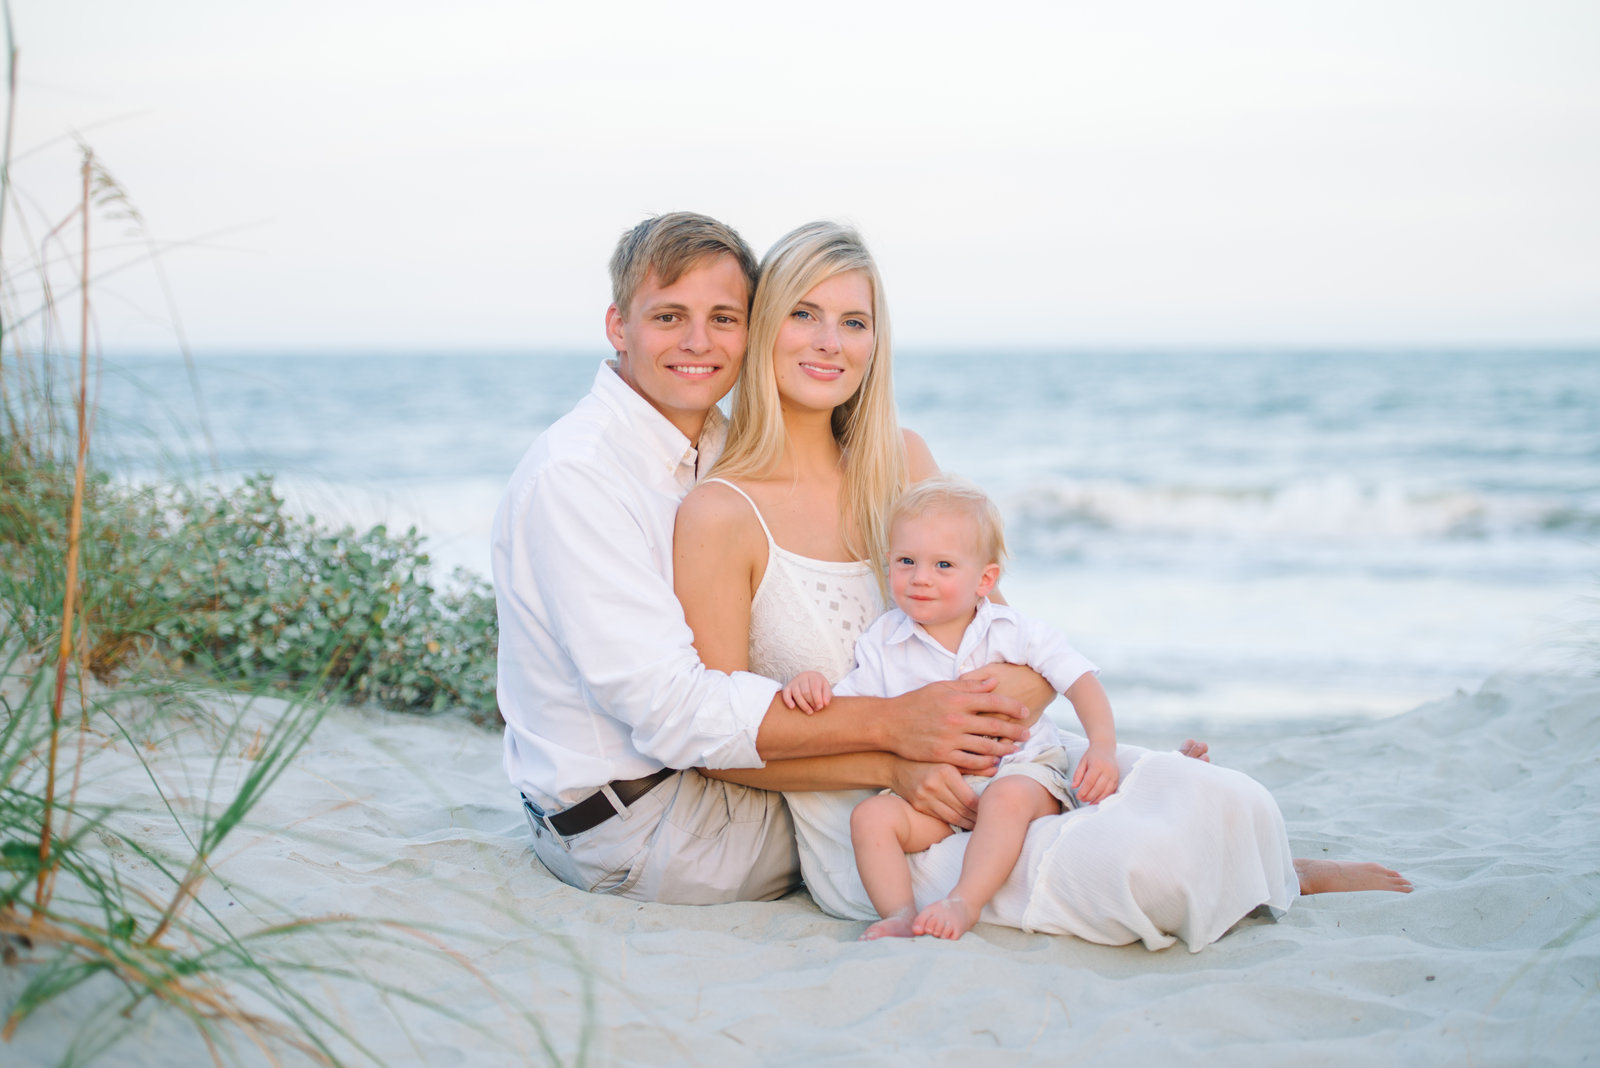 Myrtle Beach Family Photography - Family Beach Pictures Ideas and Tips in Myrtle Beach